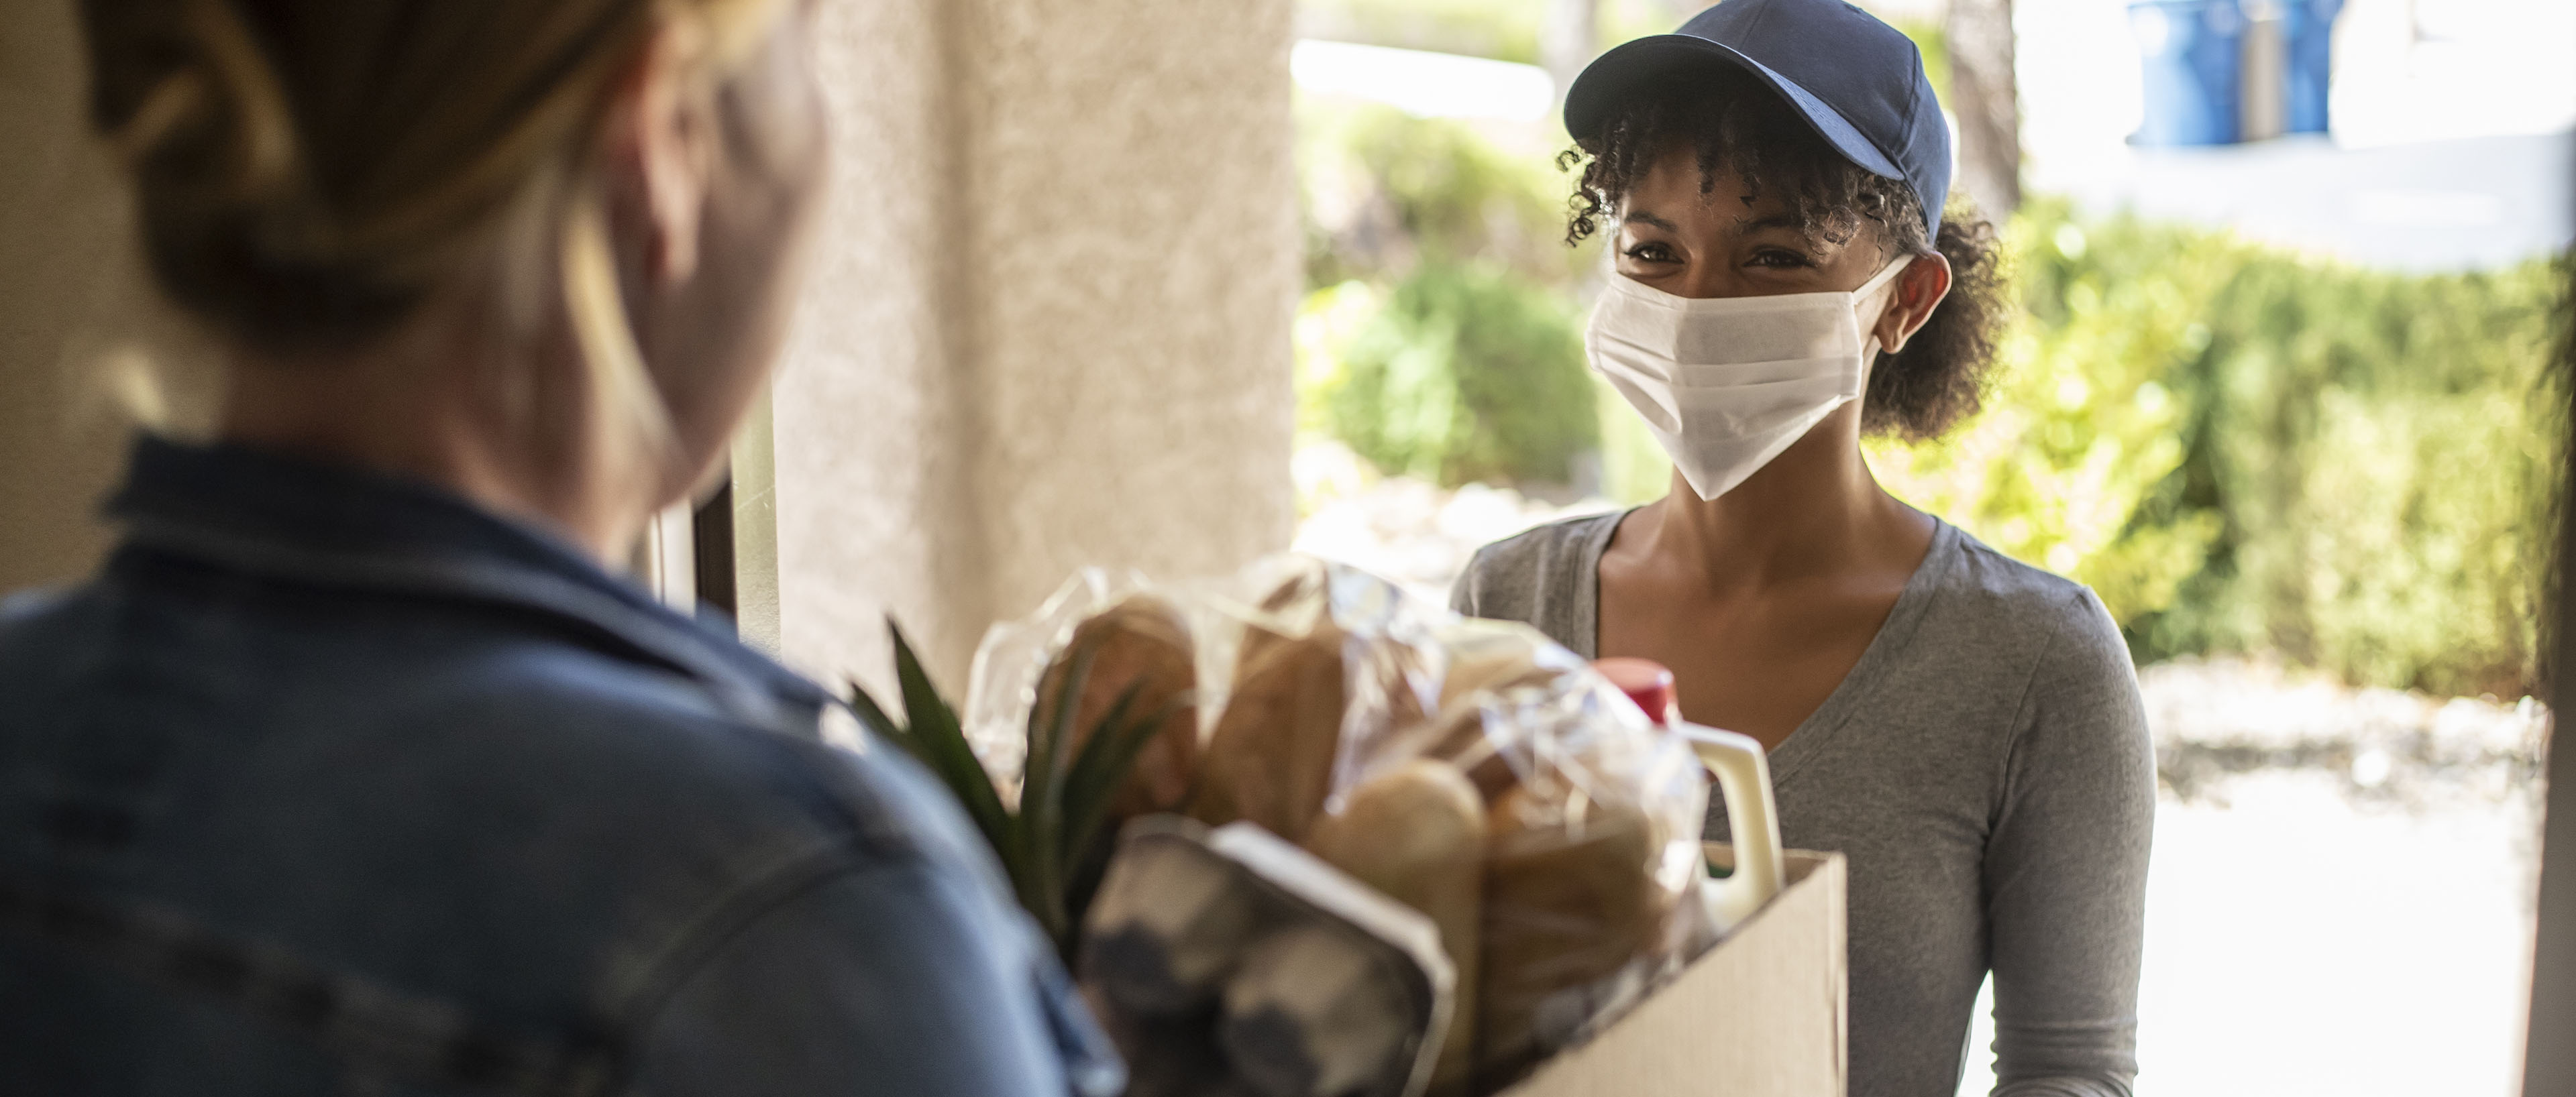 woman in mask delivering food